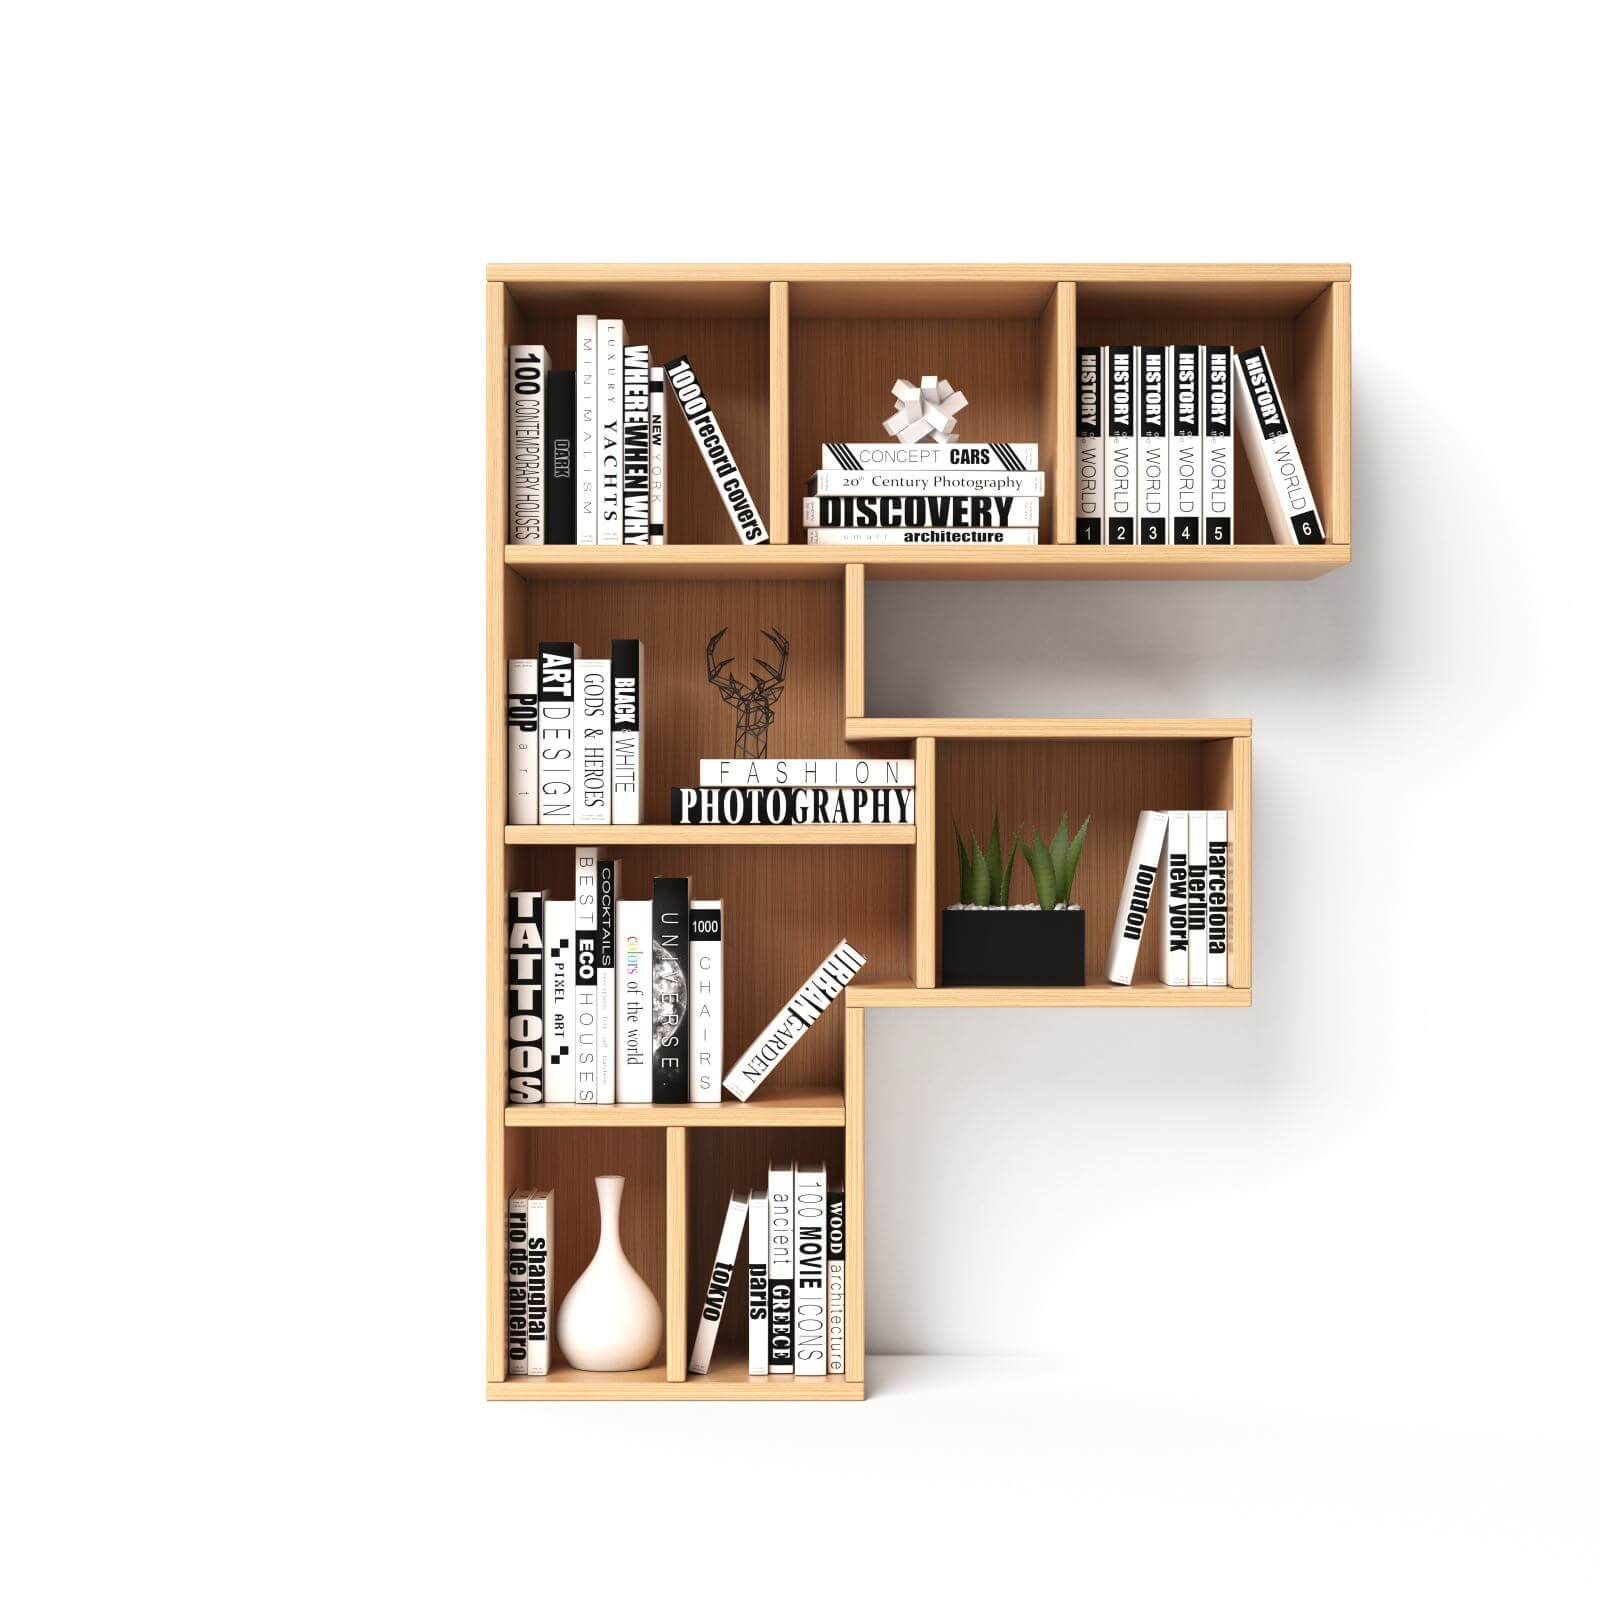 Bookshelves 3d font. Alphabet in the form of book shelves. Mockup font. Letter F 3d rendering